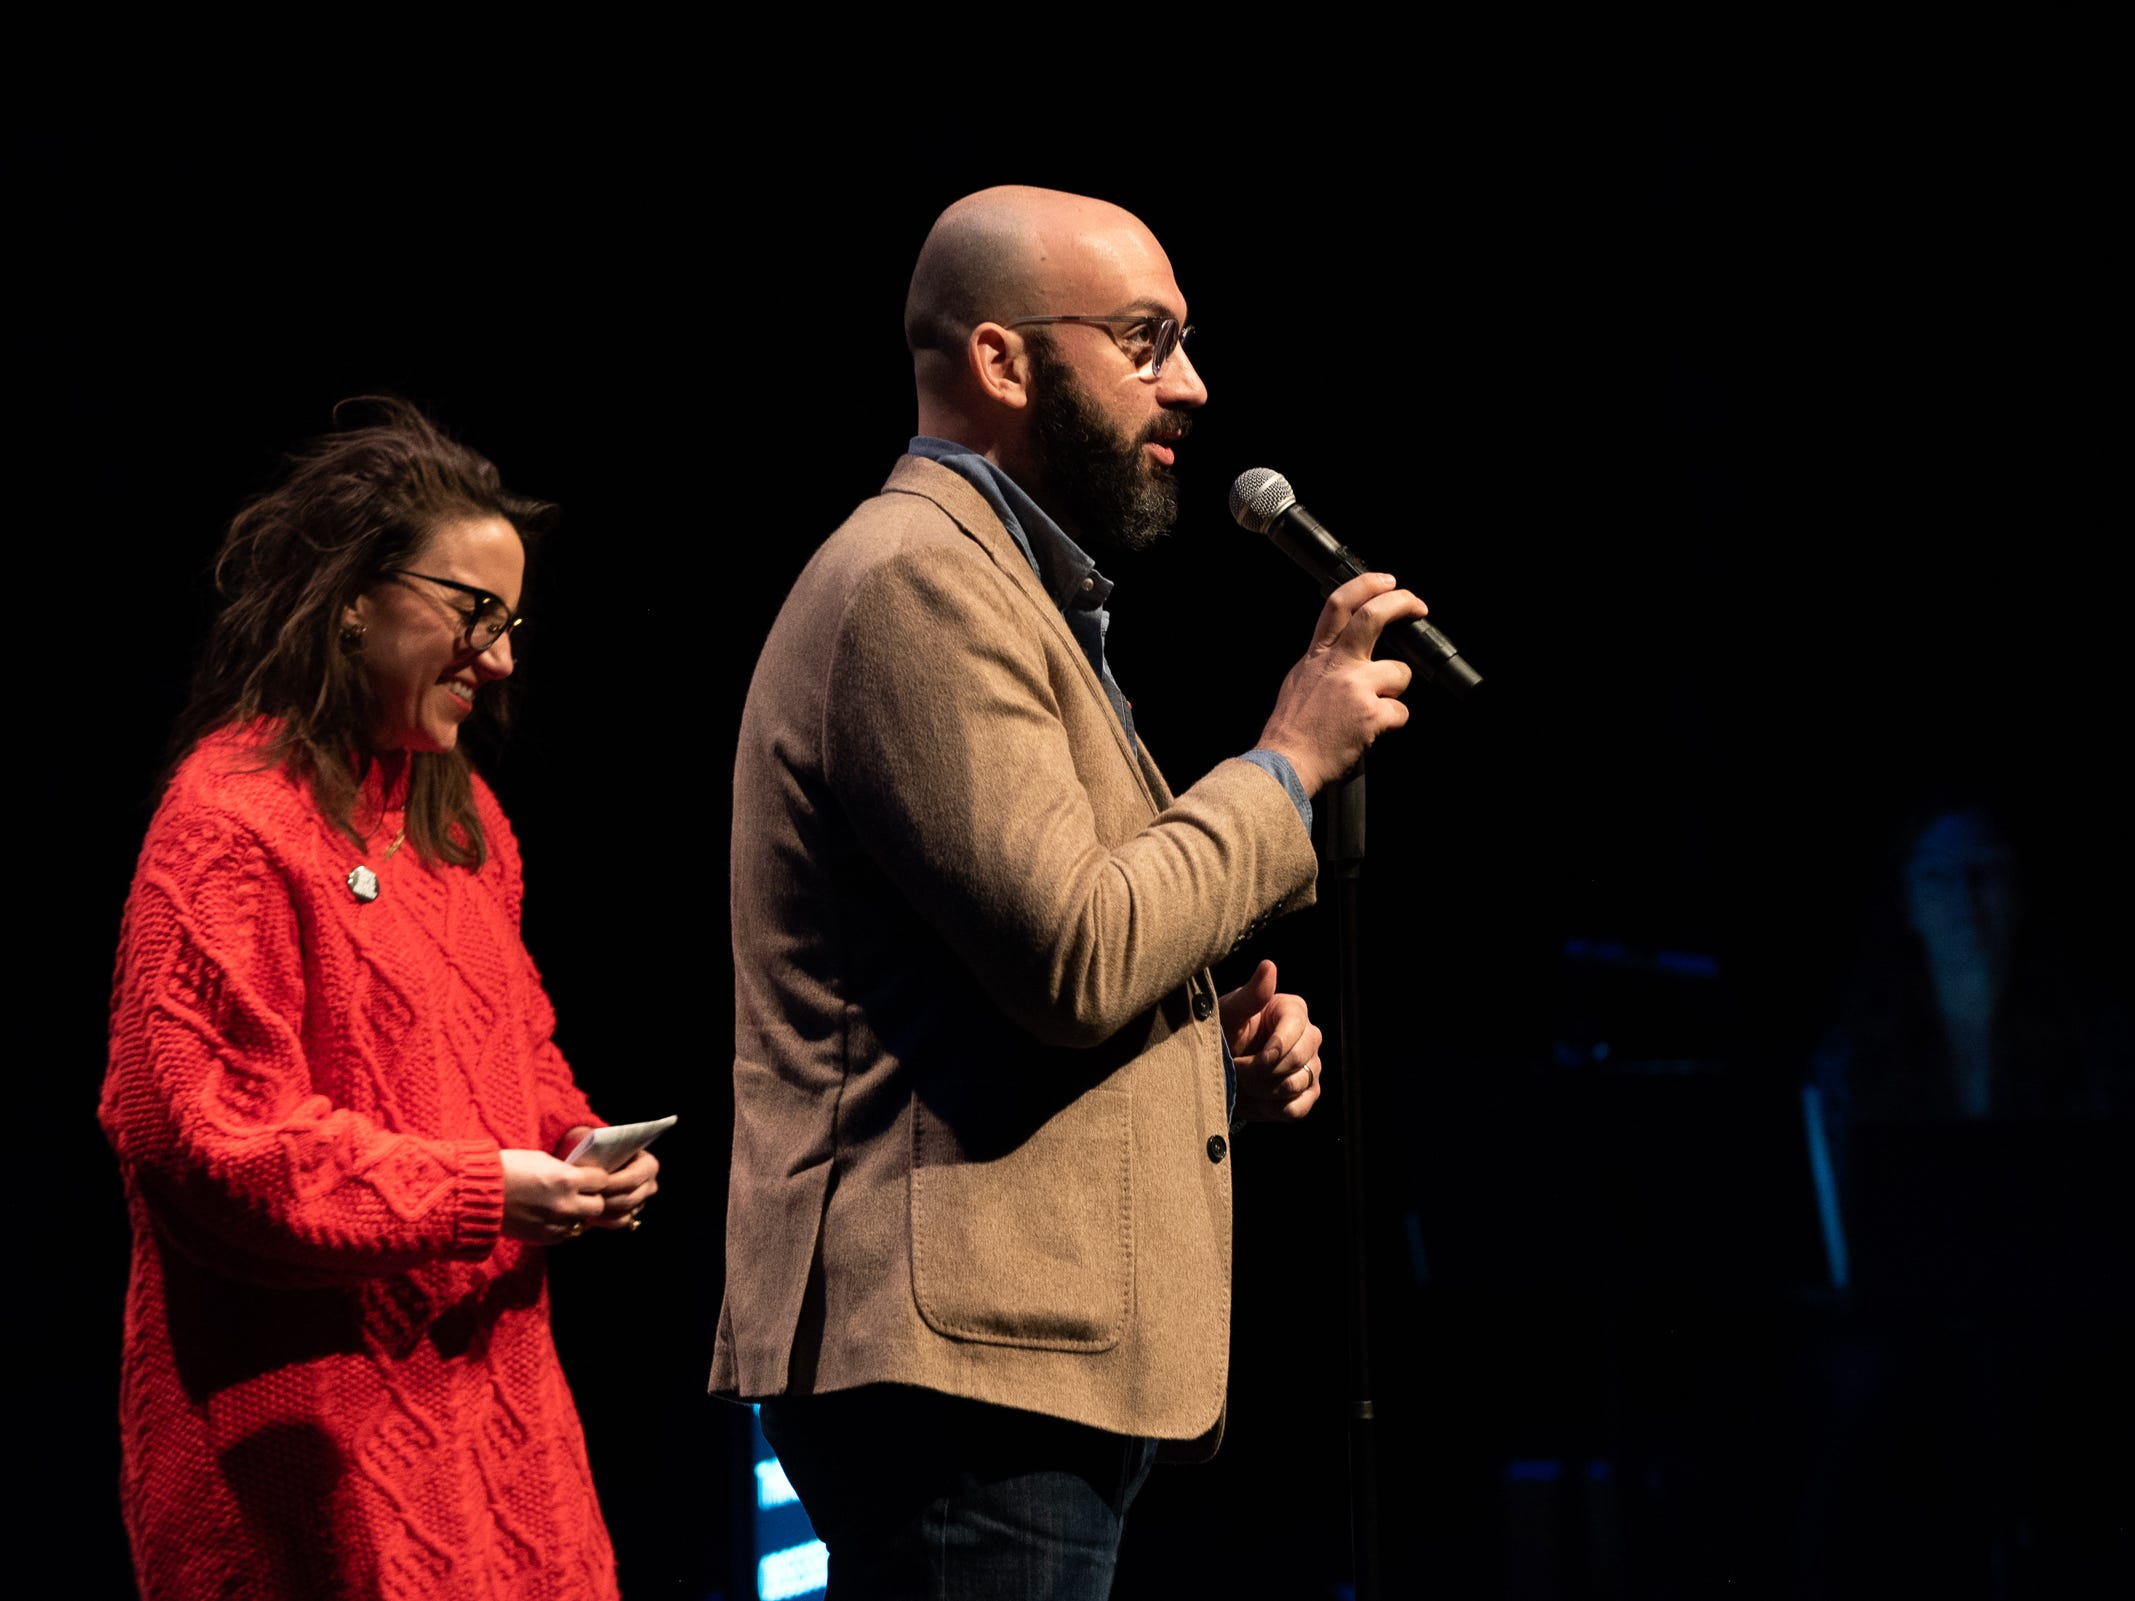 """Vince Malouf and Megan Finnerty tell their tale during """"Arizona Storytellers: Romance or Not"""" at the Scottsdale Center for Performing Arts on Wednesday, Feb. 13, 2019."""